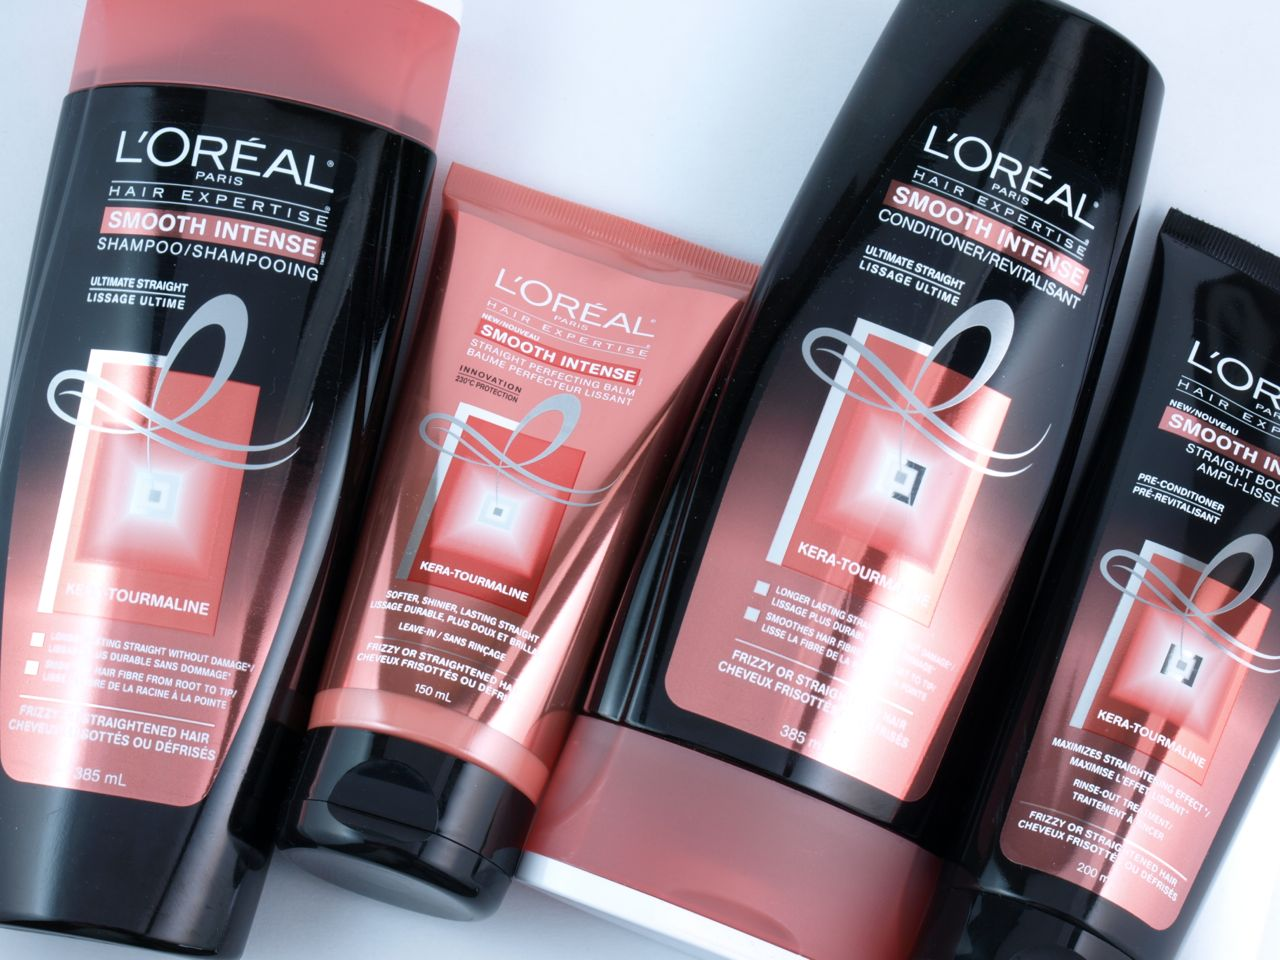 L'Oreal Paris Hair Expertise Smooth Intense Hair Care Collection Review